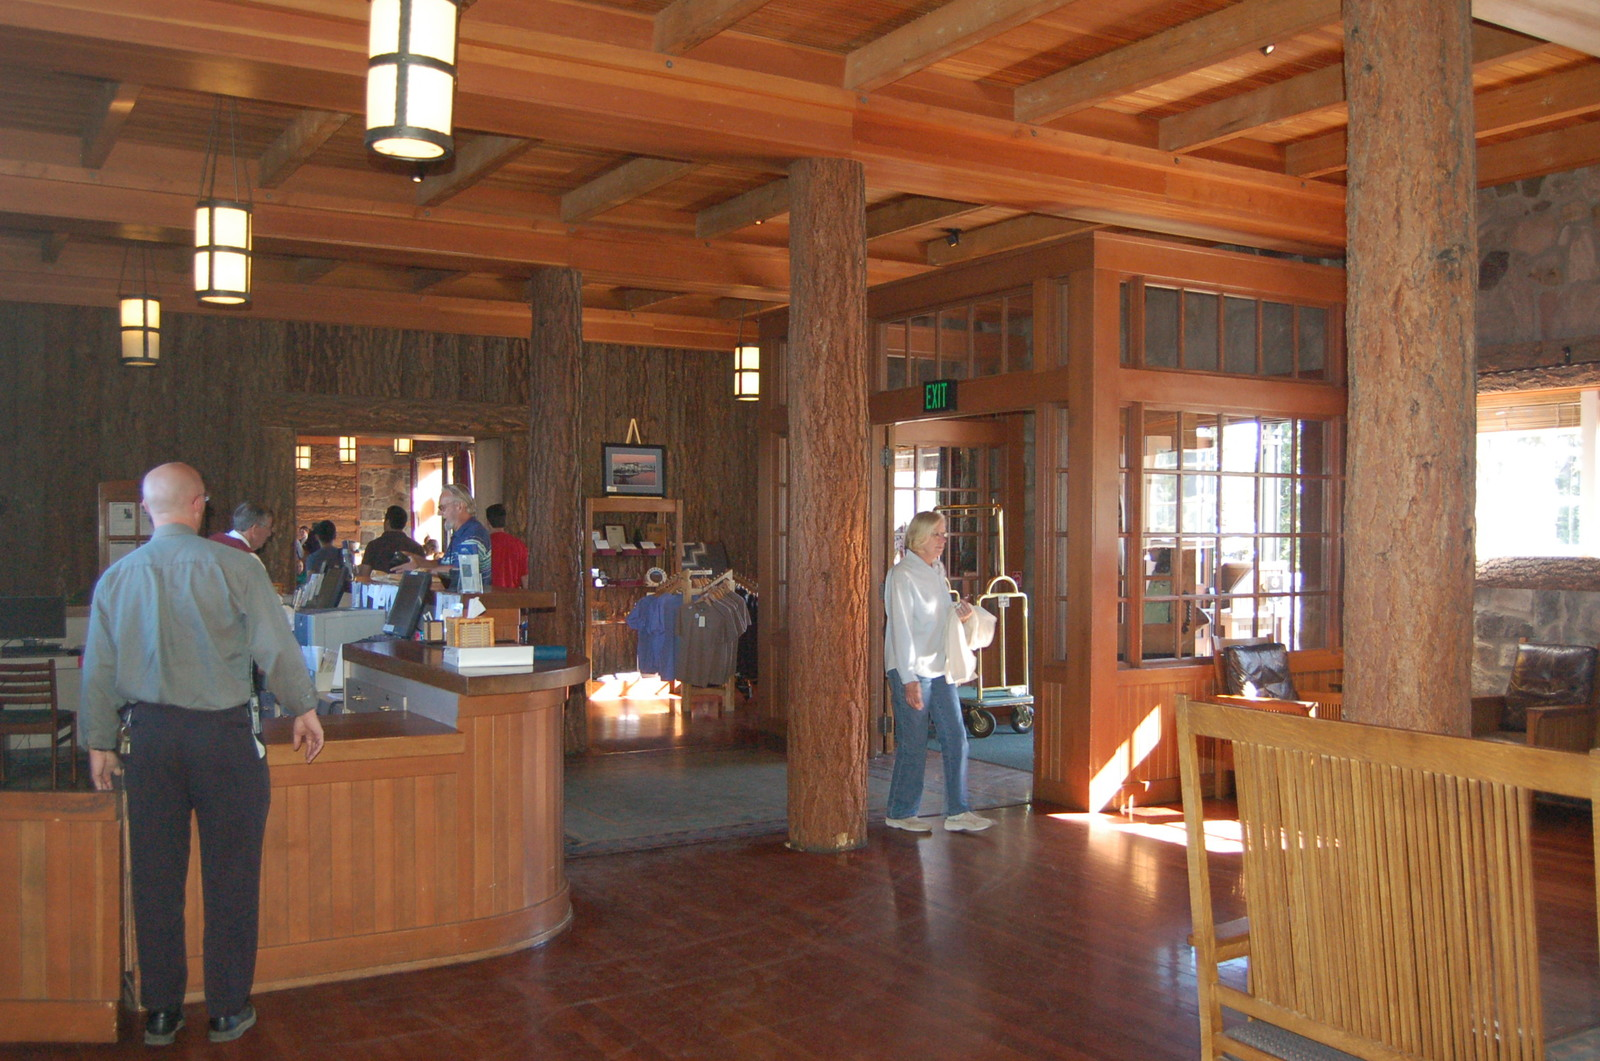 Volcanic Legacy Scenic Byway - Lobby of Crater Lake Lodge